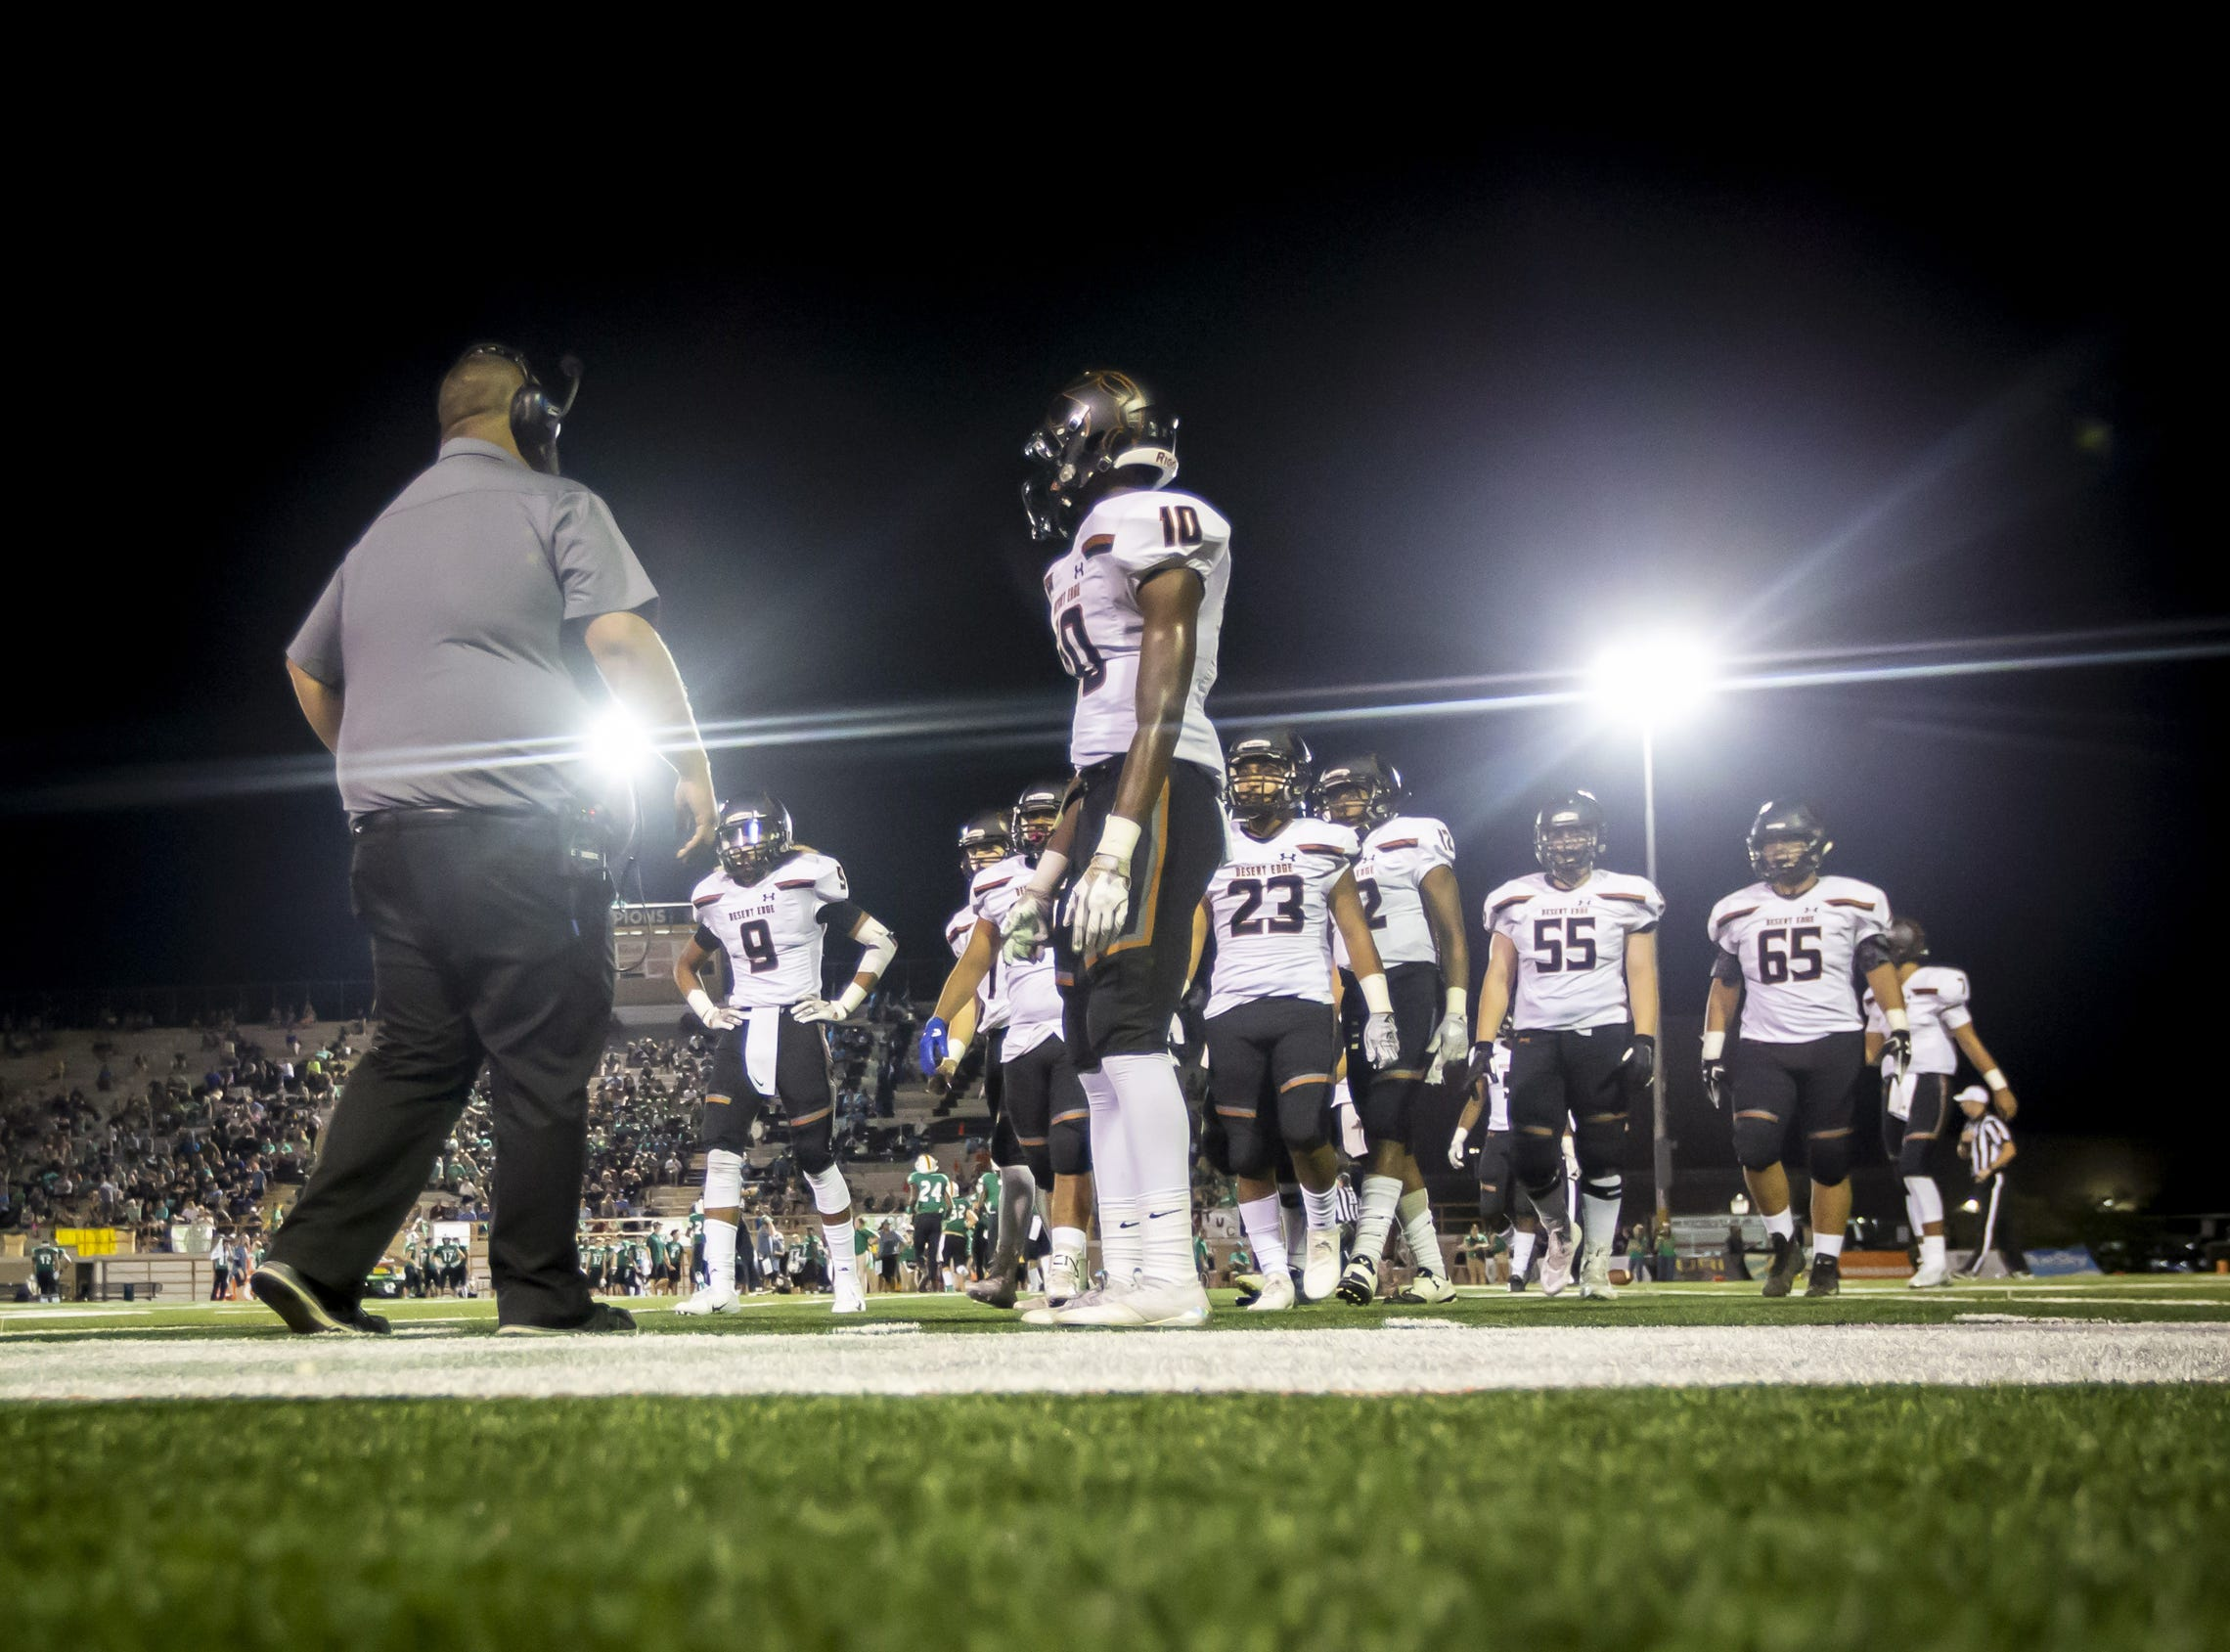 The Desert Edge Scorpions walk off the field following a play against the Saguaro Sabercats at Saguaro High School on Friday, September 28, 2018 in Scottsdale, Arizona. #azhsfb